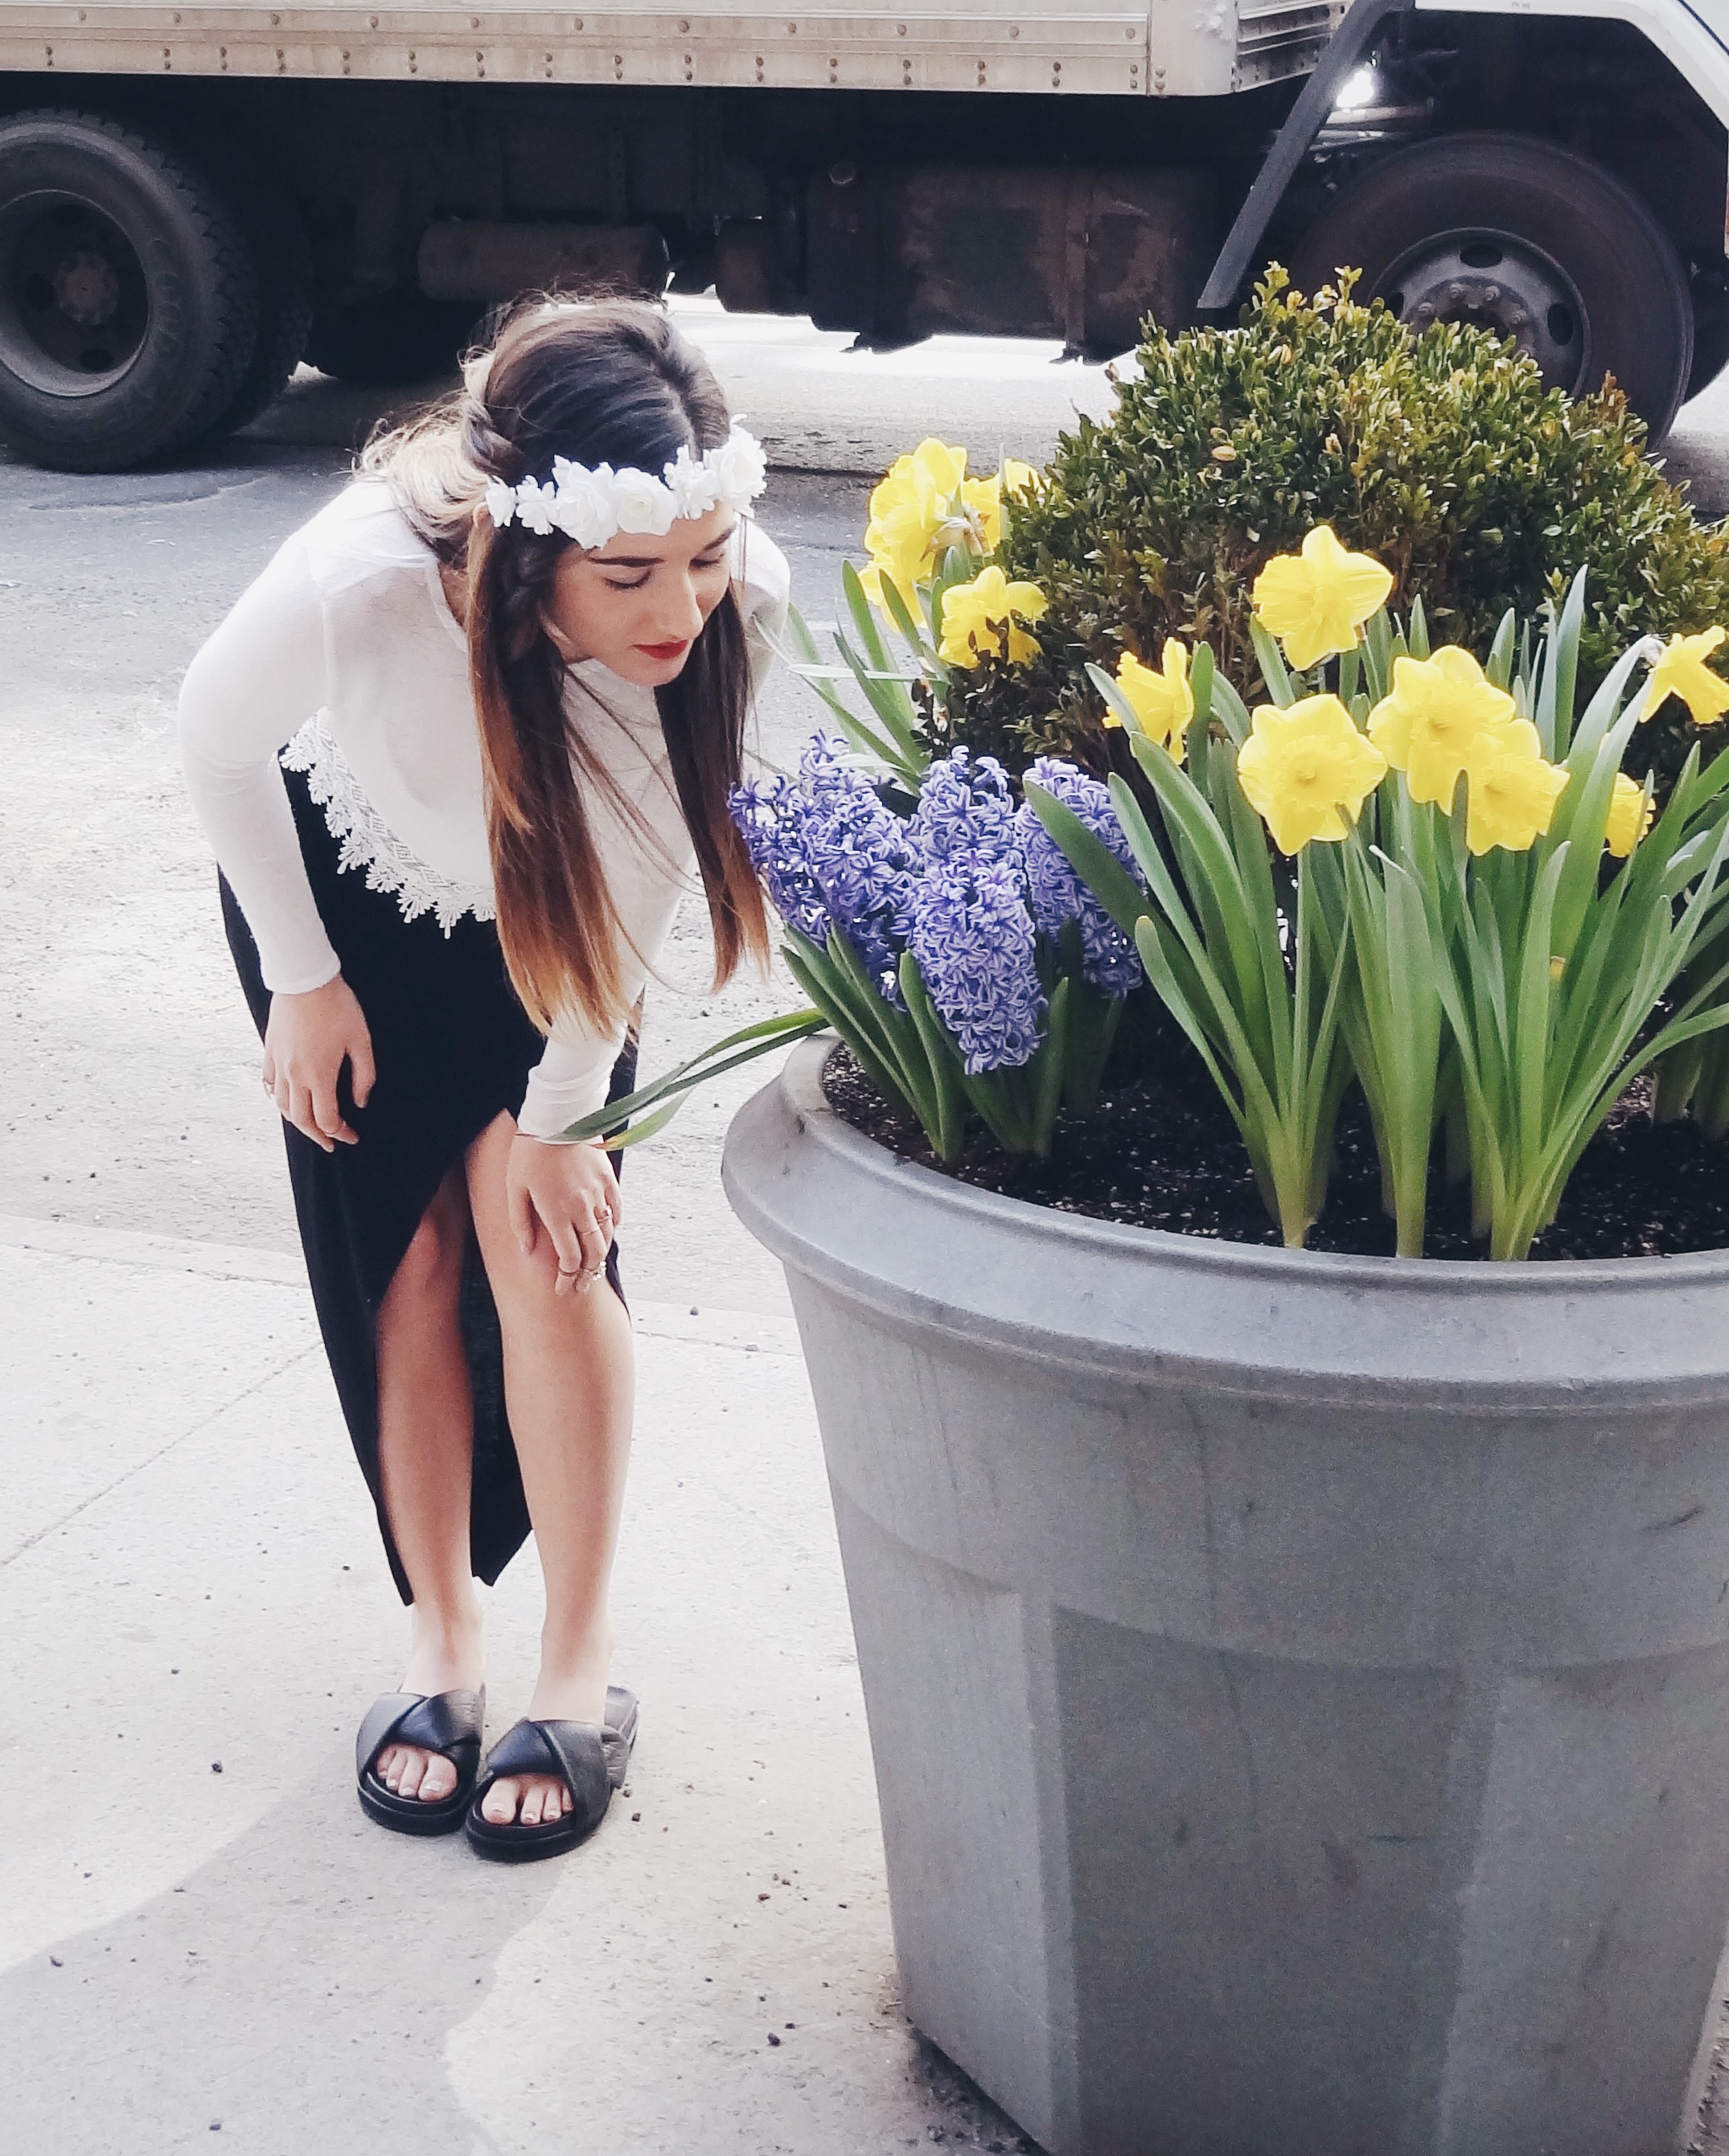 Summer Shoes From Ifchic Mules and Sandals Louboutins & Love Fashion Blog Esther Santer street style outfit trend ootd girl shoes NYC shopping dress skirt shirt women beautiful model hair photoshoot white black lifestyle heels collaboration flowers.JPG